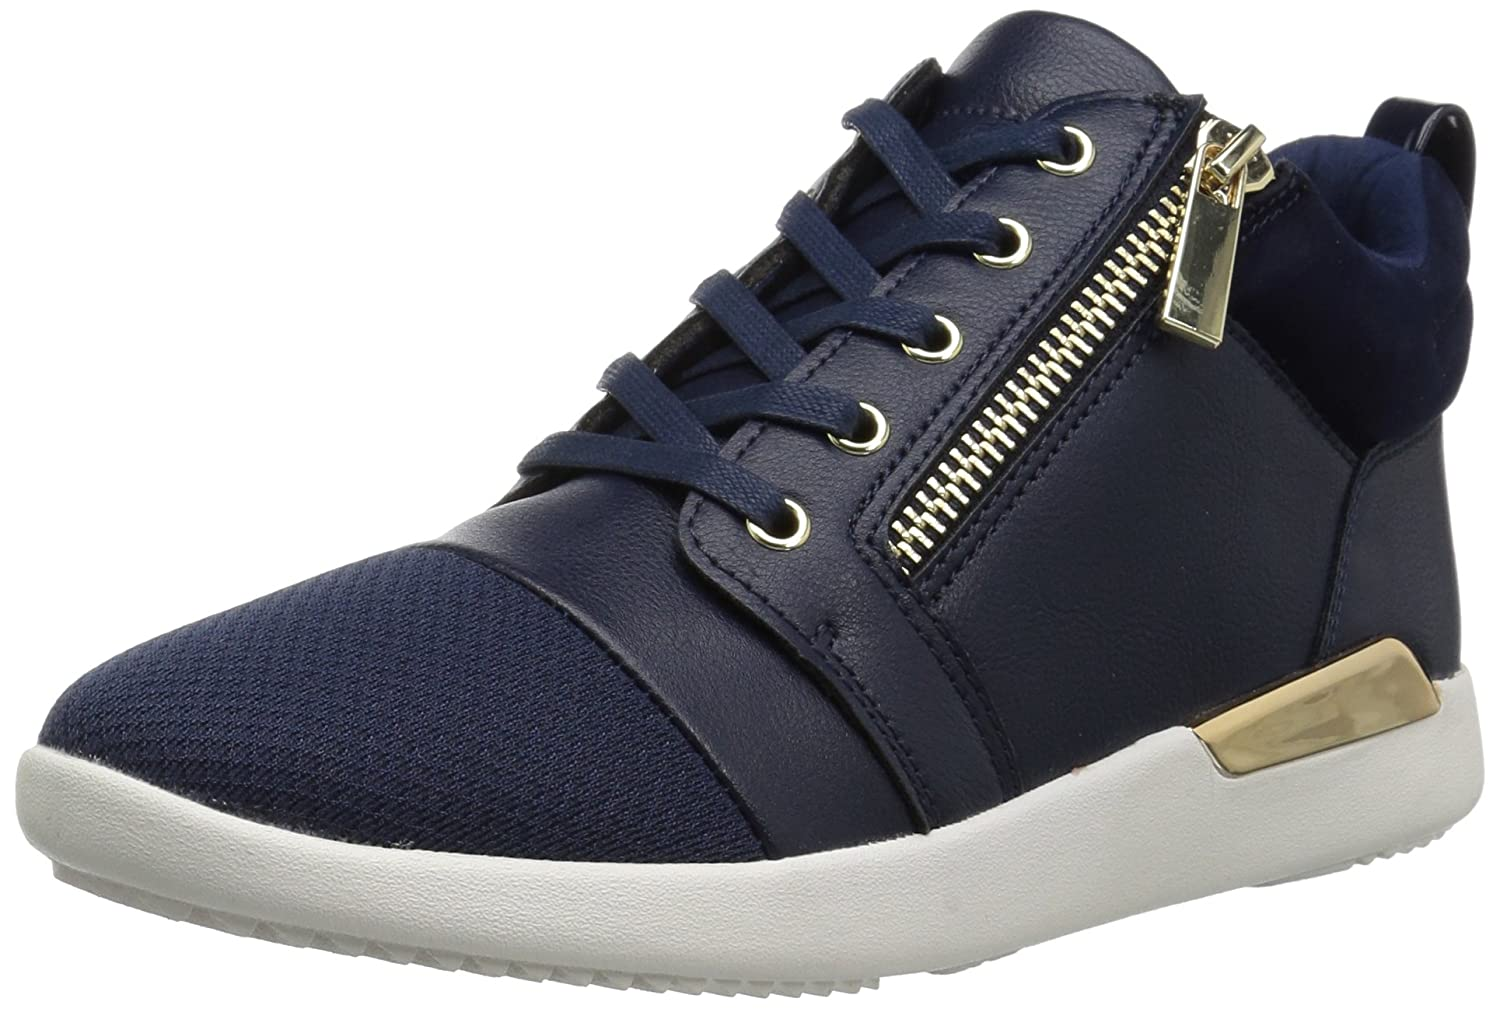 ALDO Women's Naven Fashion Sneaker B071KKWW9F 6 B(M) US|Navy